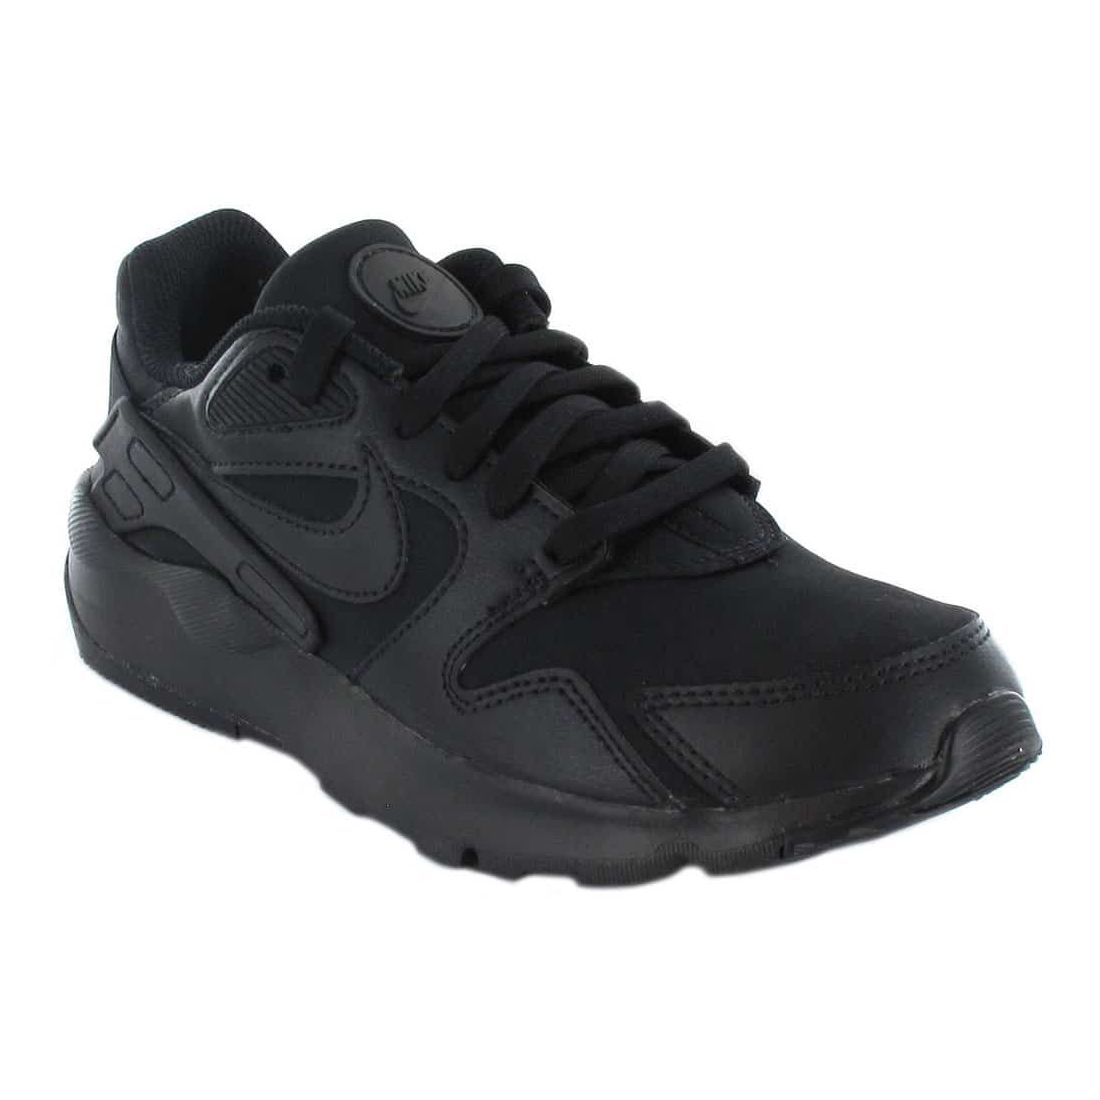 Nike LD Victory W Nike Shoes Women's Casual Lifestyle Sizes: 37,5, 38, 39, 40, 41; Color: black